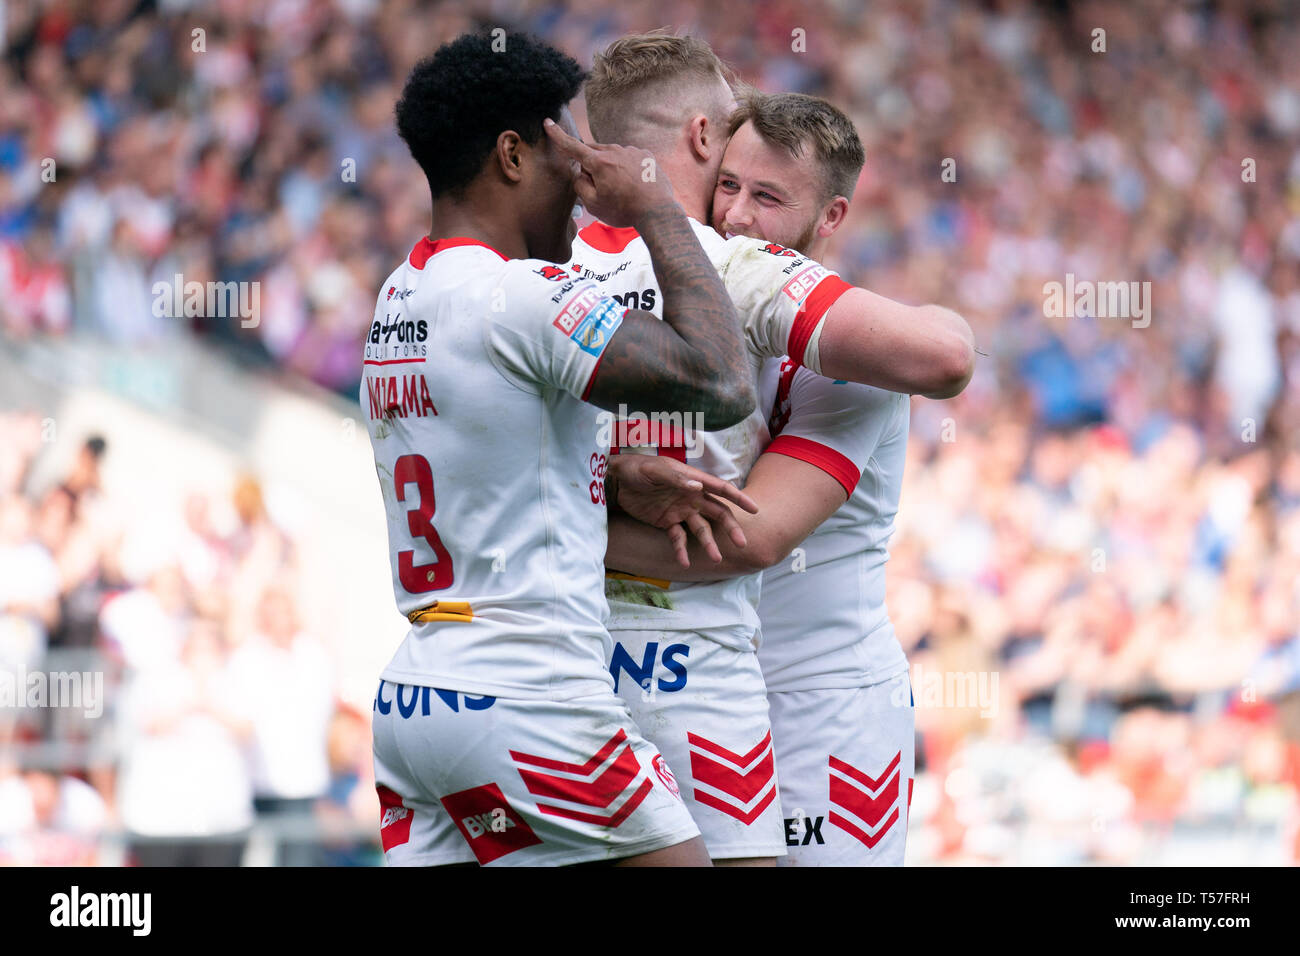 St Helens, UK  22nd Apr, 2019  St  Helens's Adam Swift celebrates